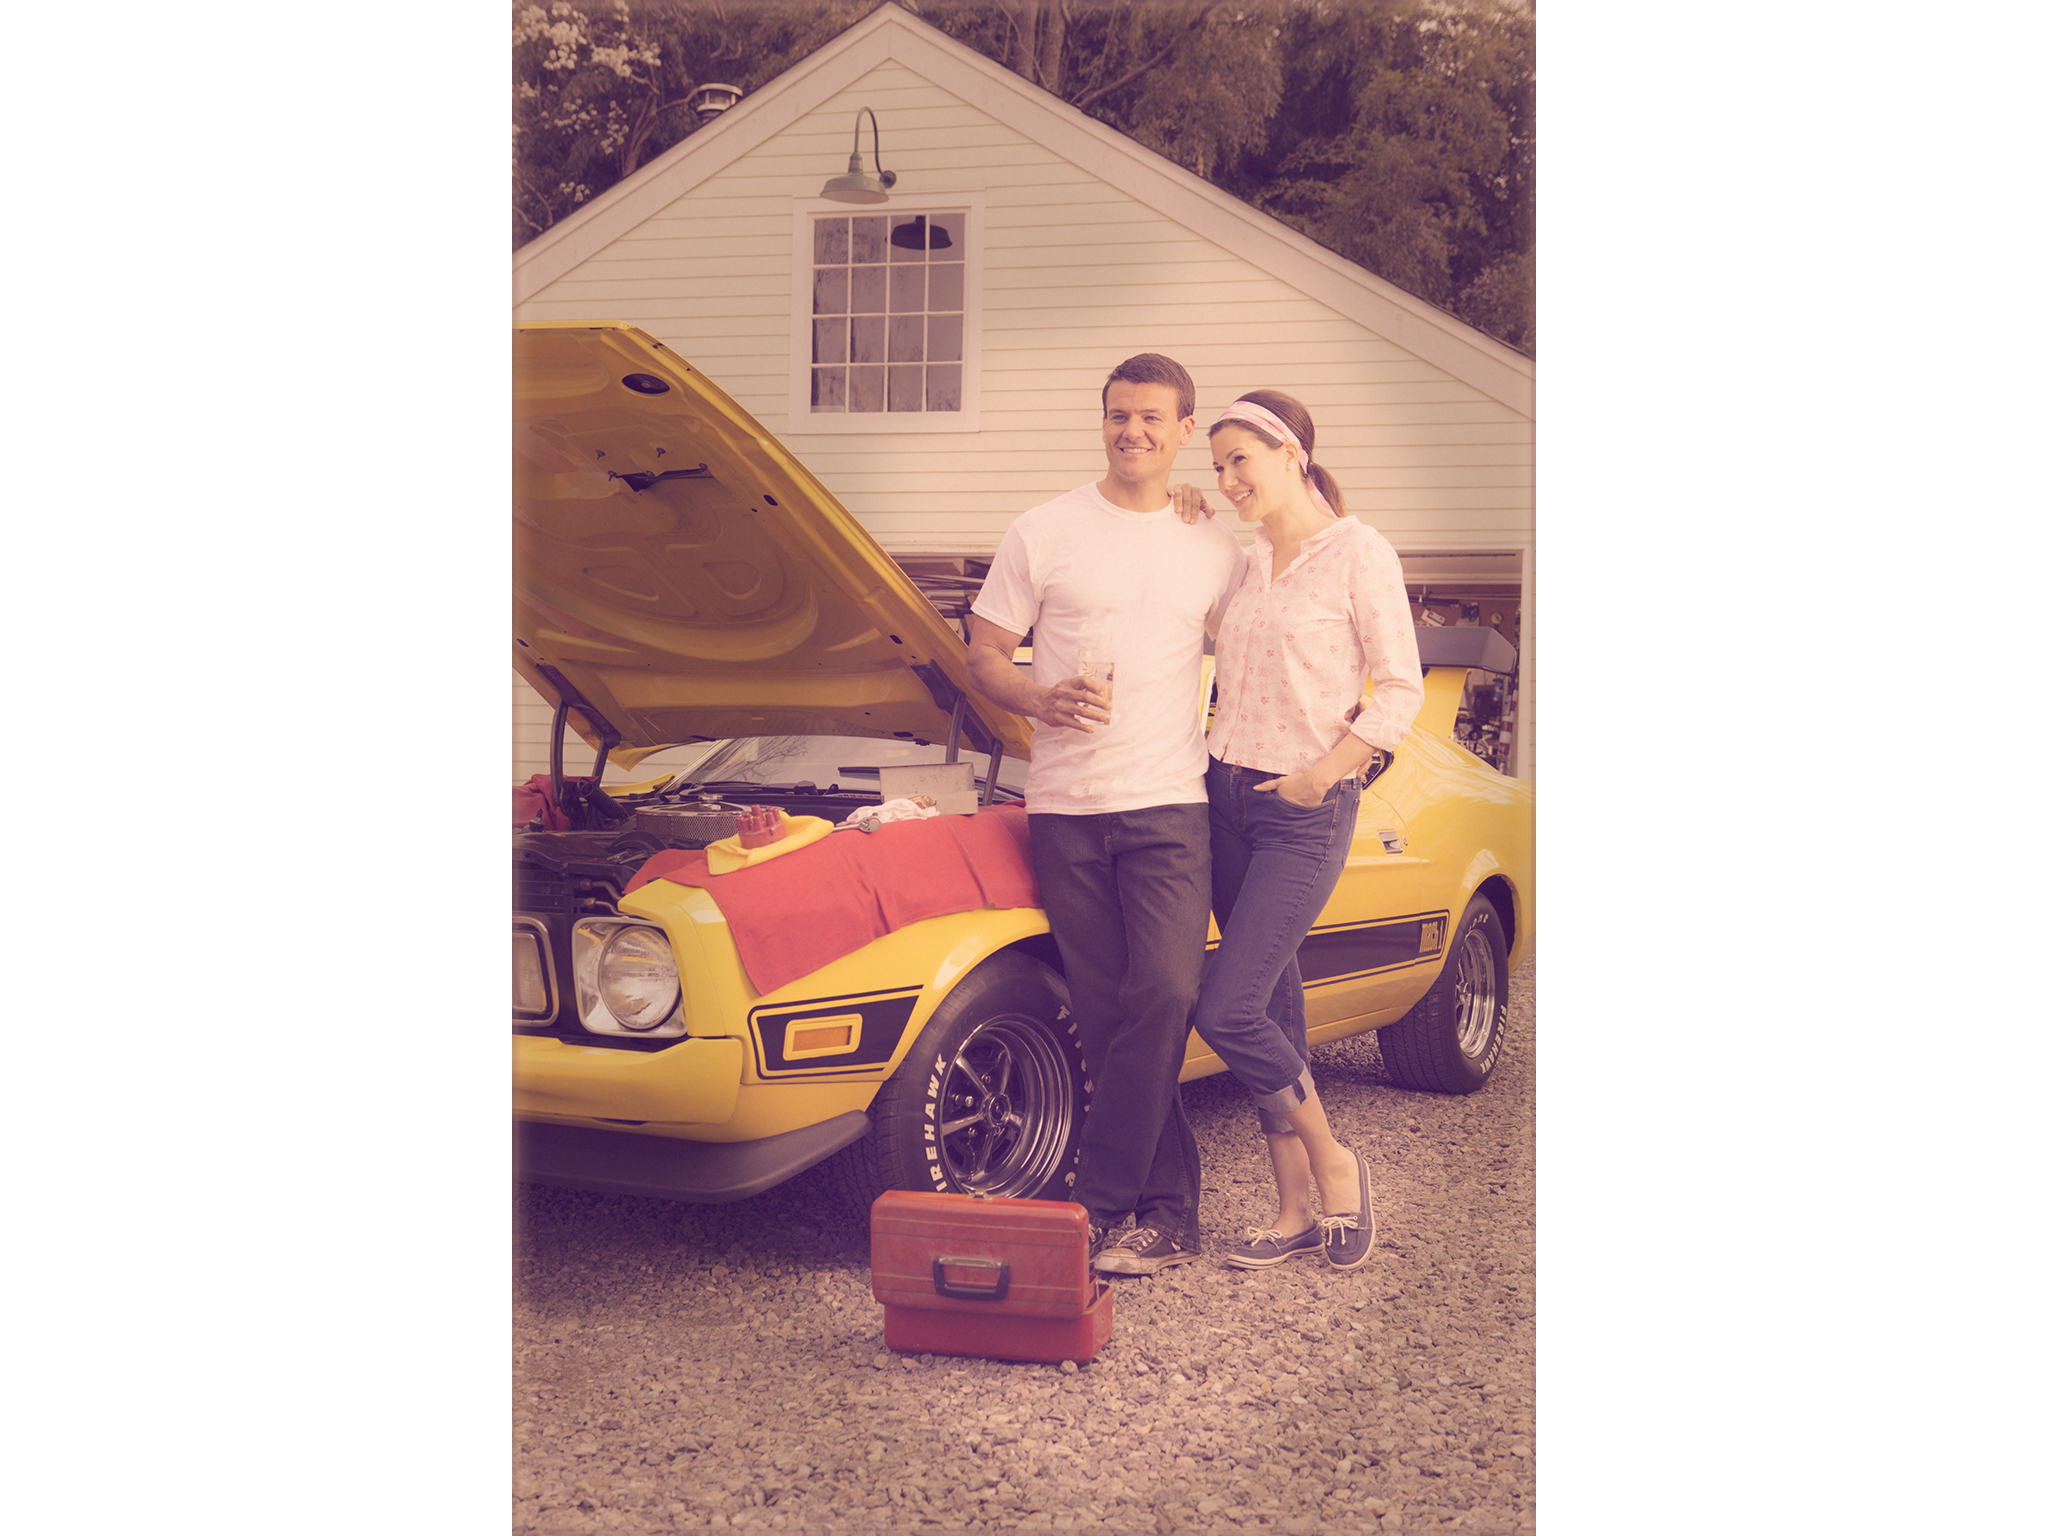 Retro photo of young couple working on yellow Ford Mustang